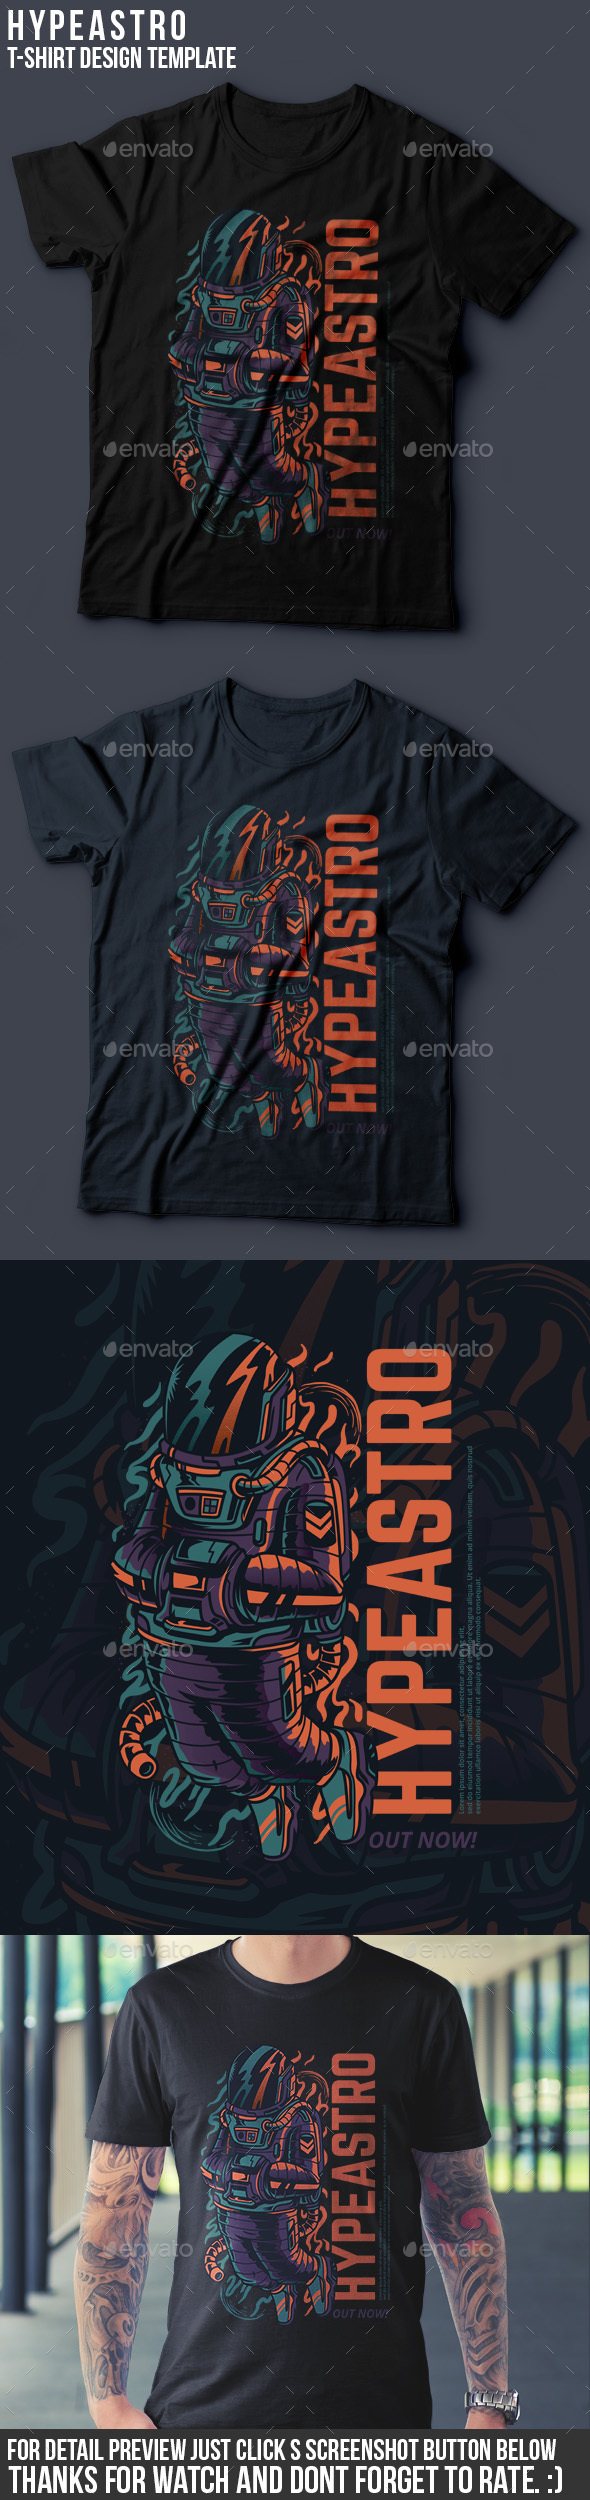 Hypeastro T-Shirt Design - Grunge Designs